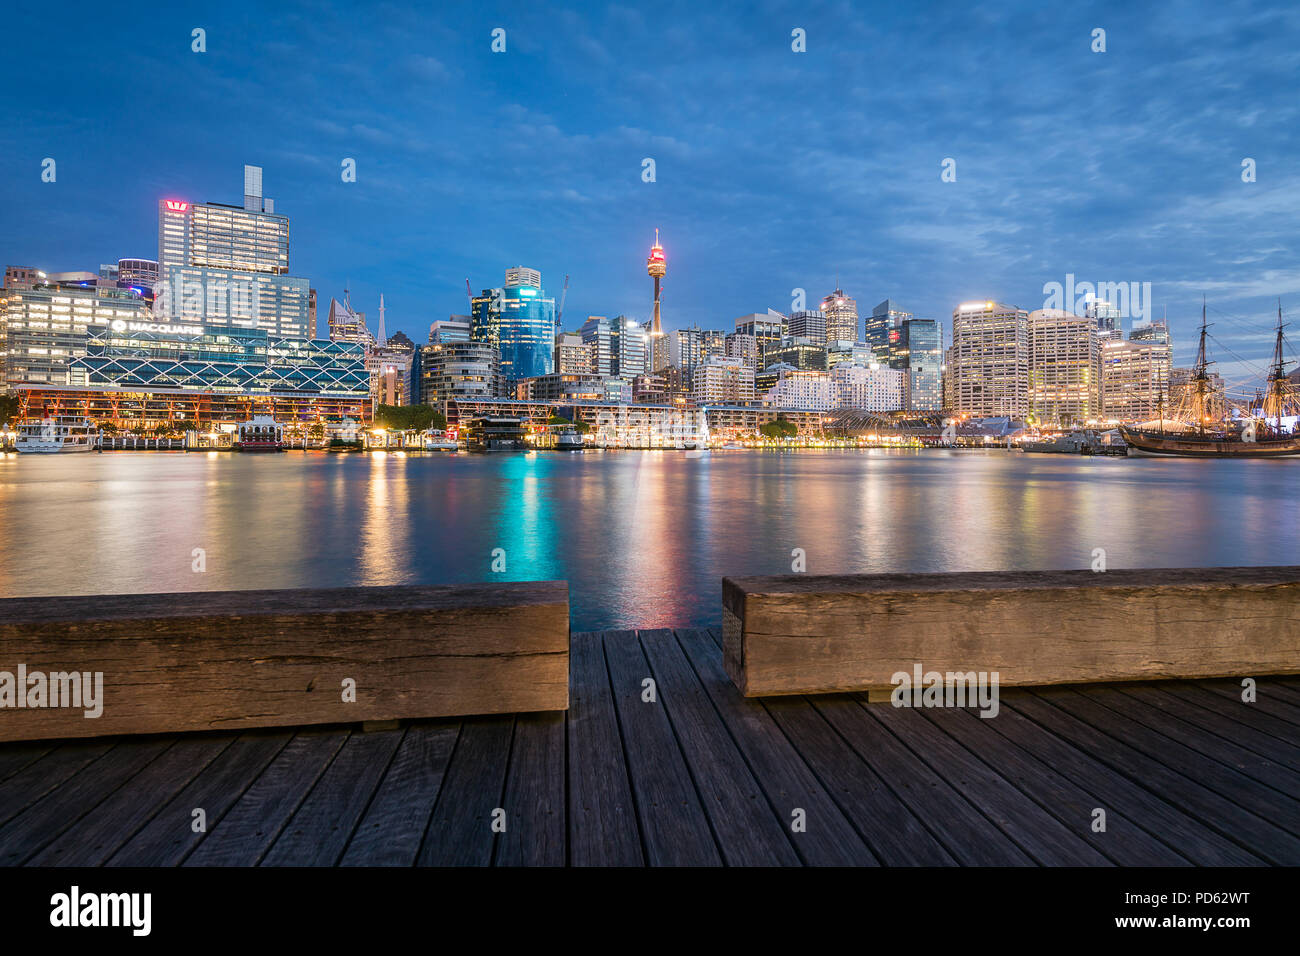 Darling Harbour at Night - Stock Image